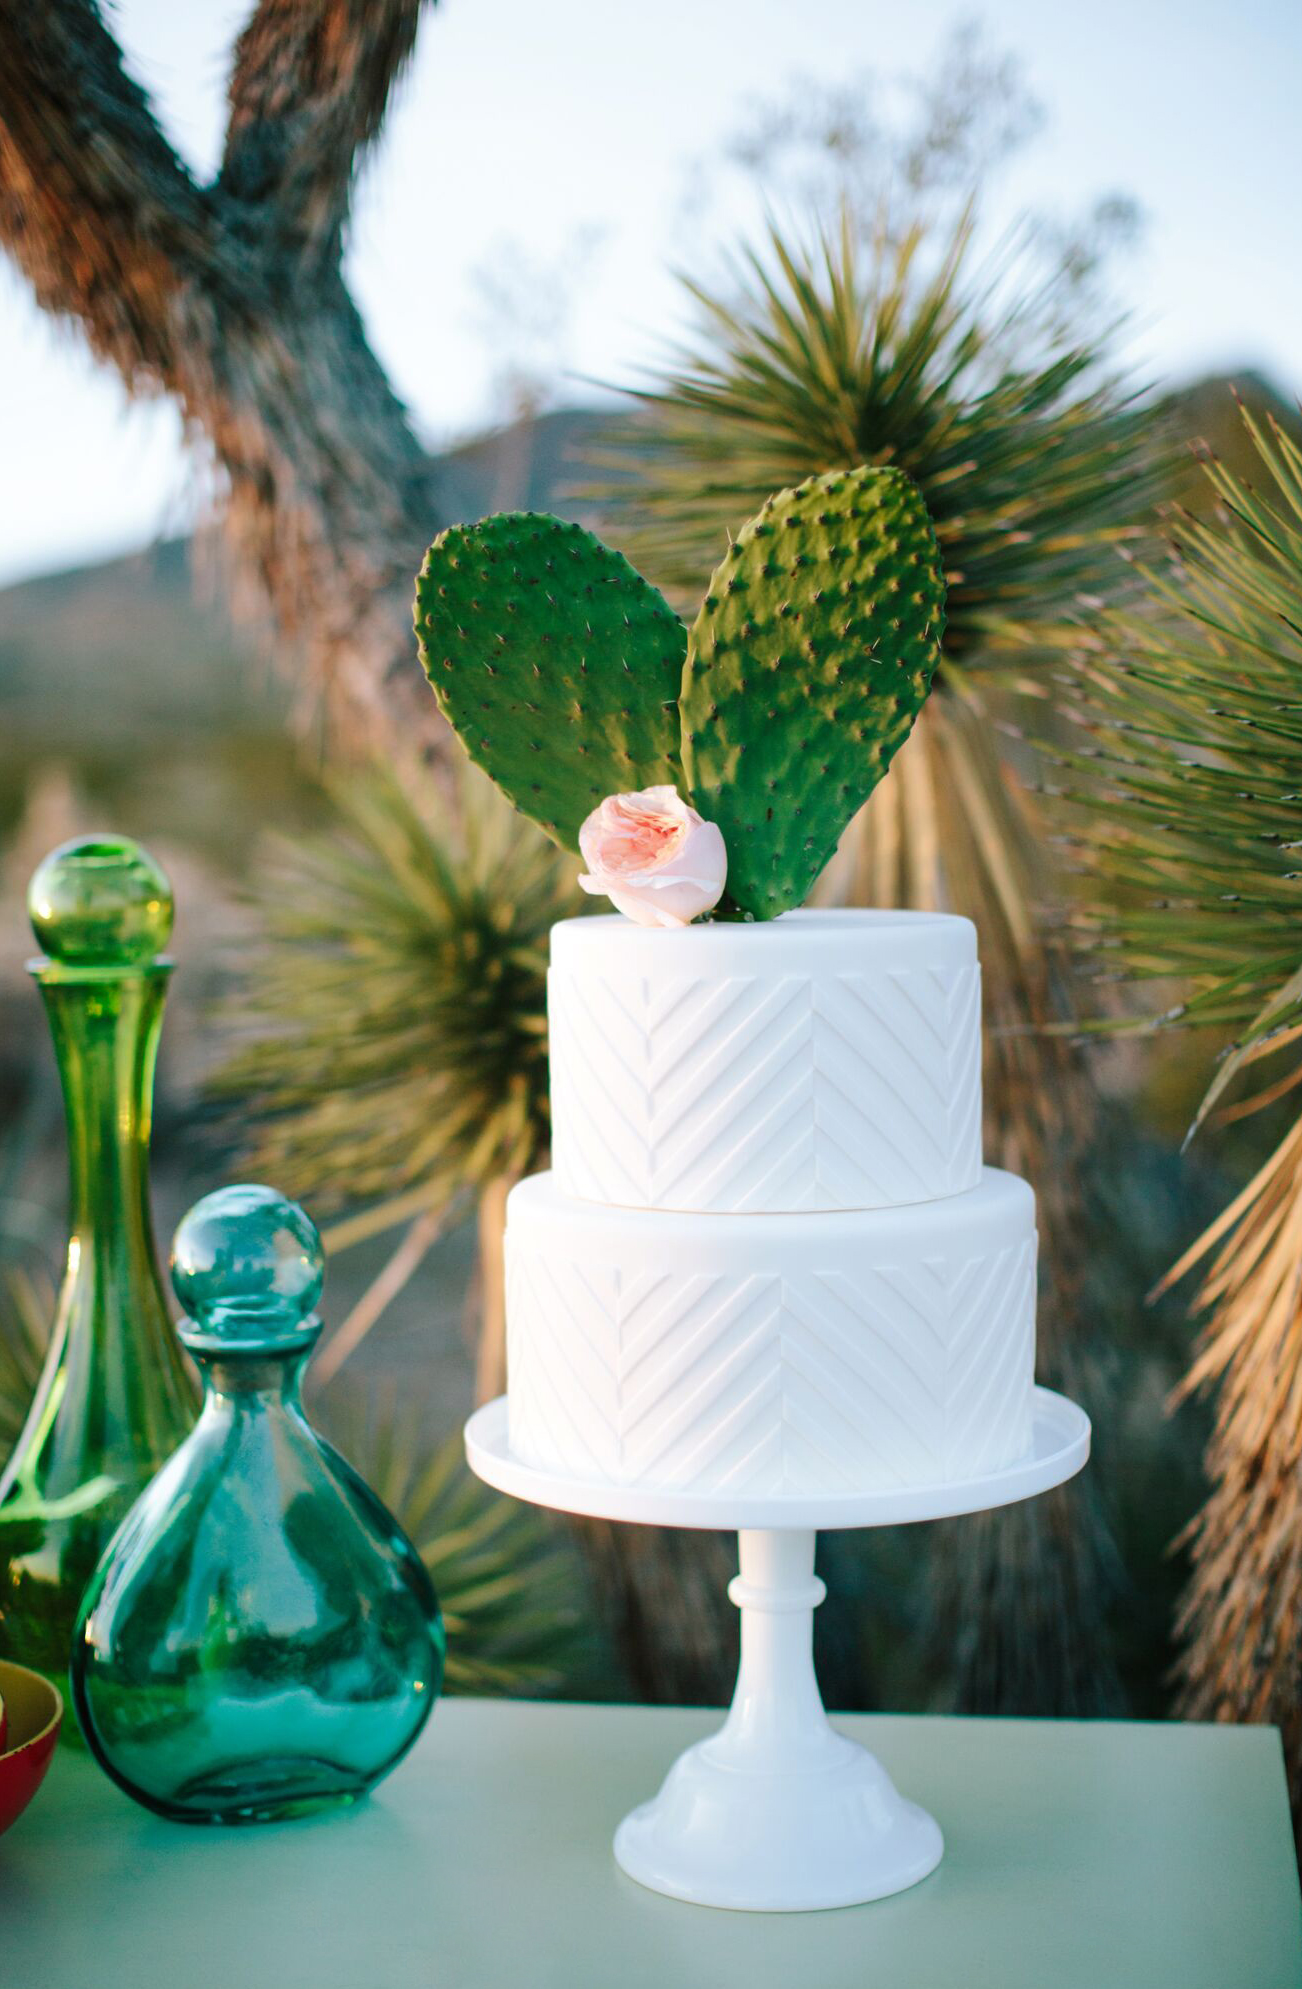 Two-Tiered White Wedding Cake Topped with Cactus